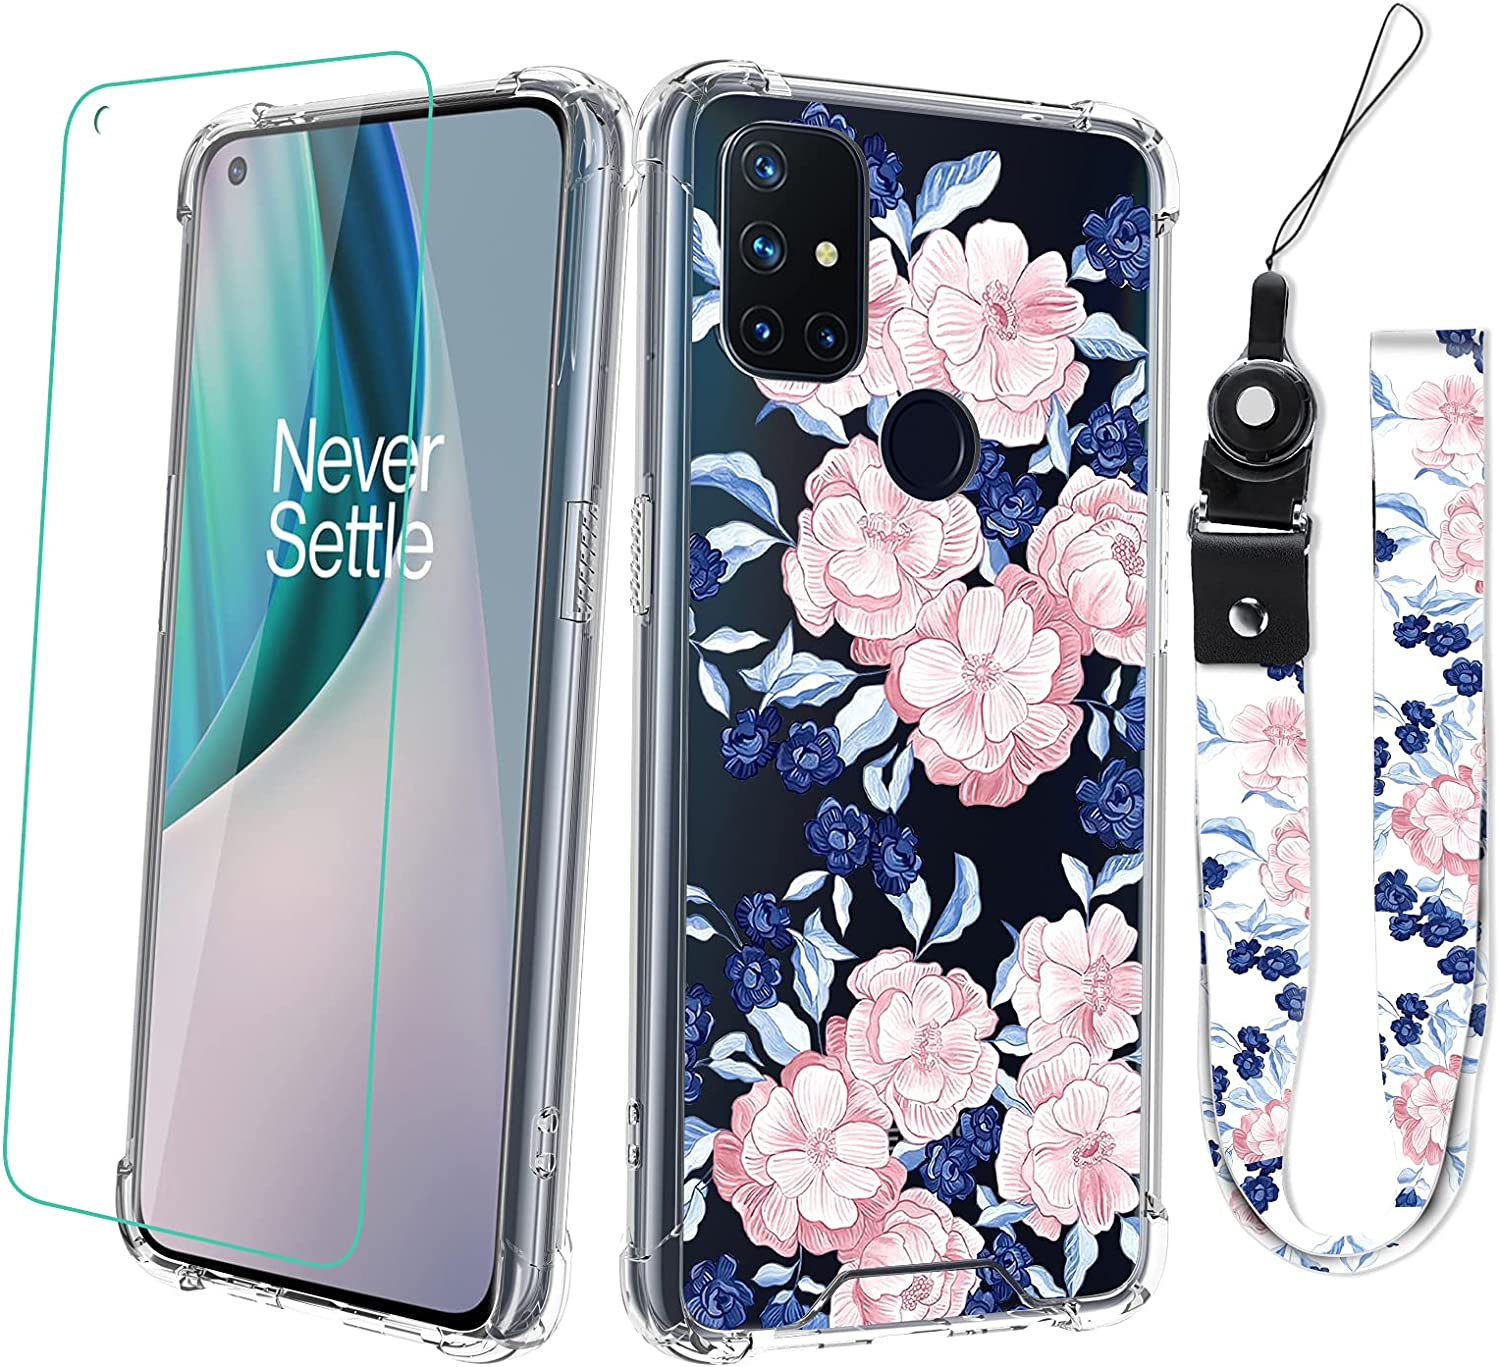 OnePlus Nord N10 (5G) Case with Screen Protector Penoy Floral Design with Neck Strap Lanyard for Women Girls Protective Shockproof Clear Transparent Pink Blue Flower Cell Phone Bumper Cover Case